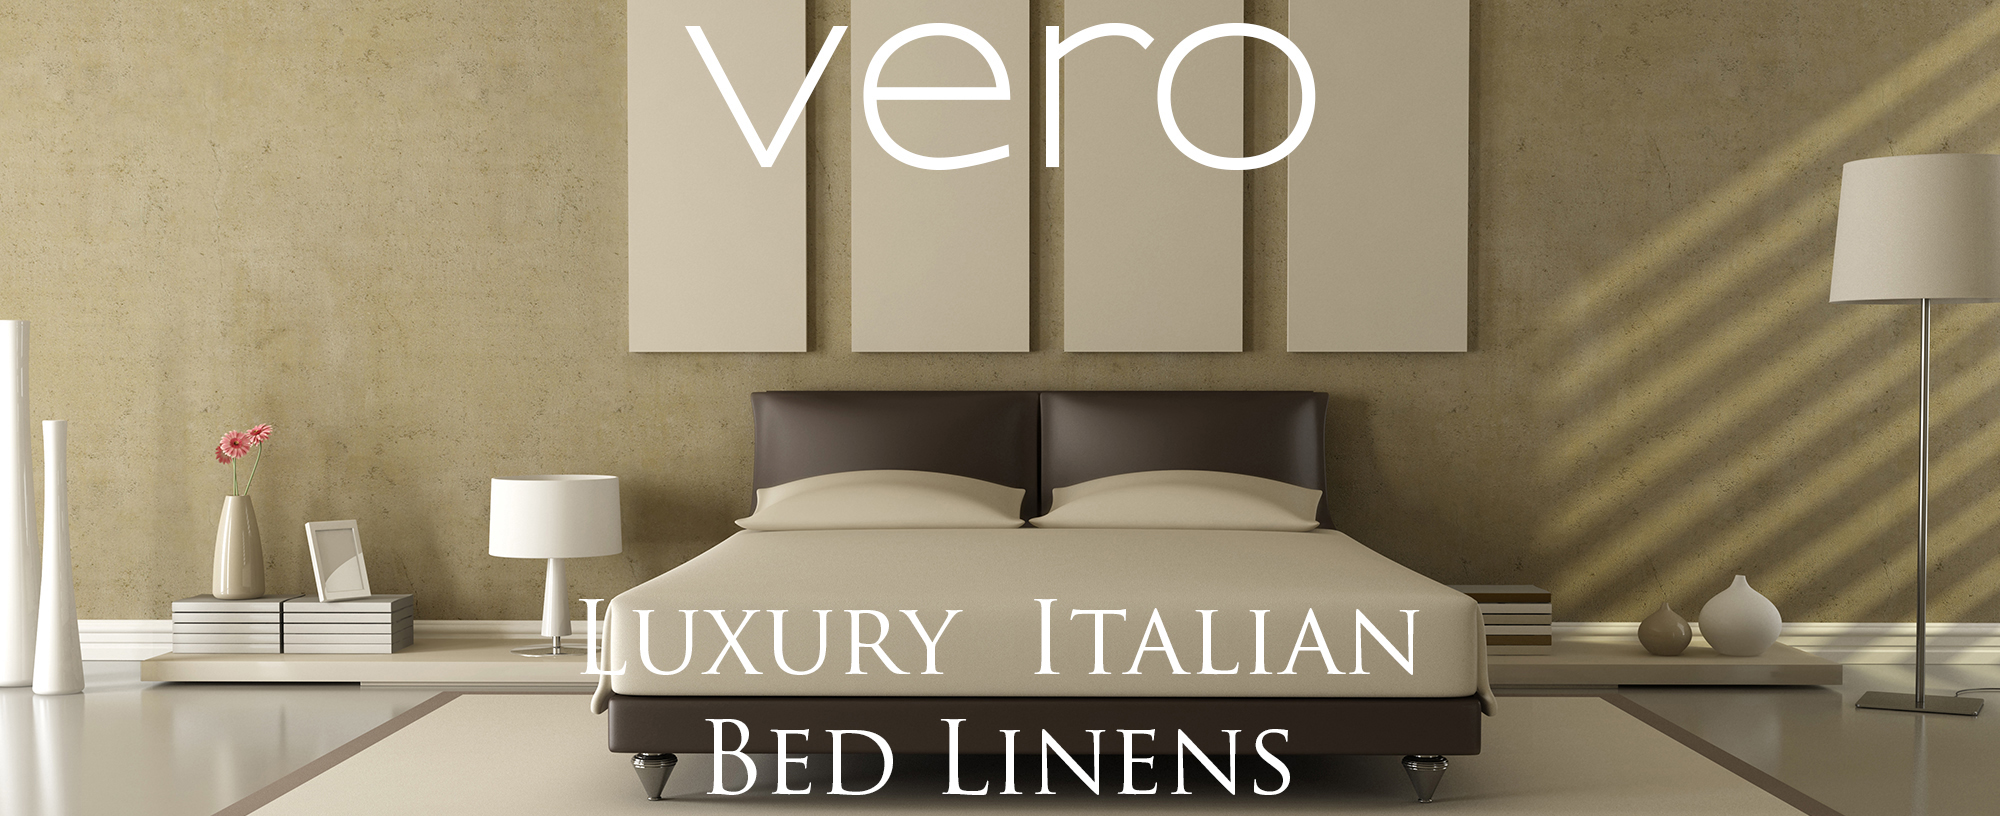 Discount Luxury Bed linens & sheets, Luxury Duvet Covers, Softest Bed Sheets, High Thread Count sheets, Luxury Egyptian Cotton Sheets, World's Finest Italian Bed Linens, Linens made in Italy,